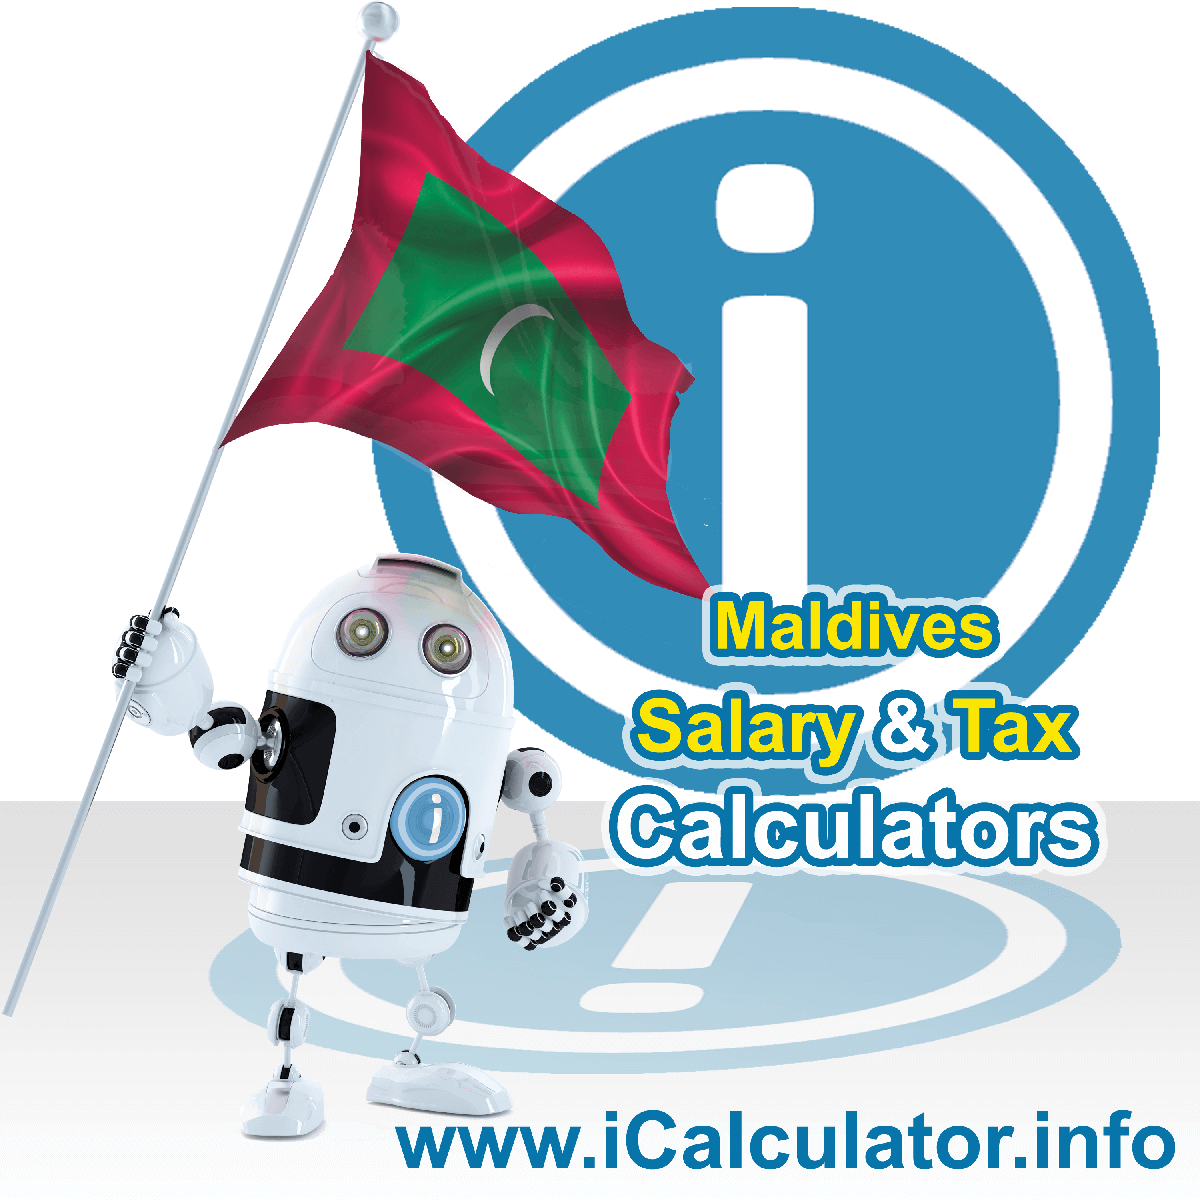 Maldives Wage Calculator. This image shows the Maldives flag and information relating to the tax formula for the Maldives Tax Calculator